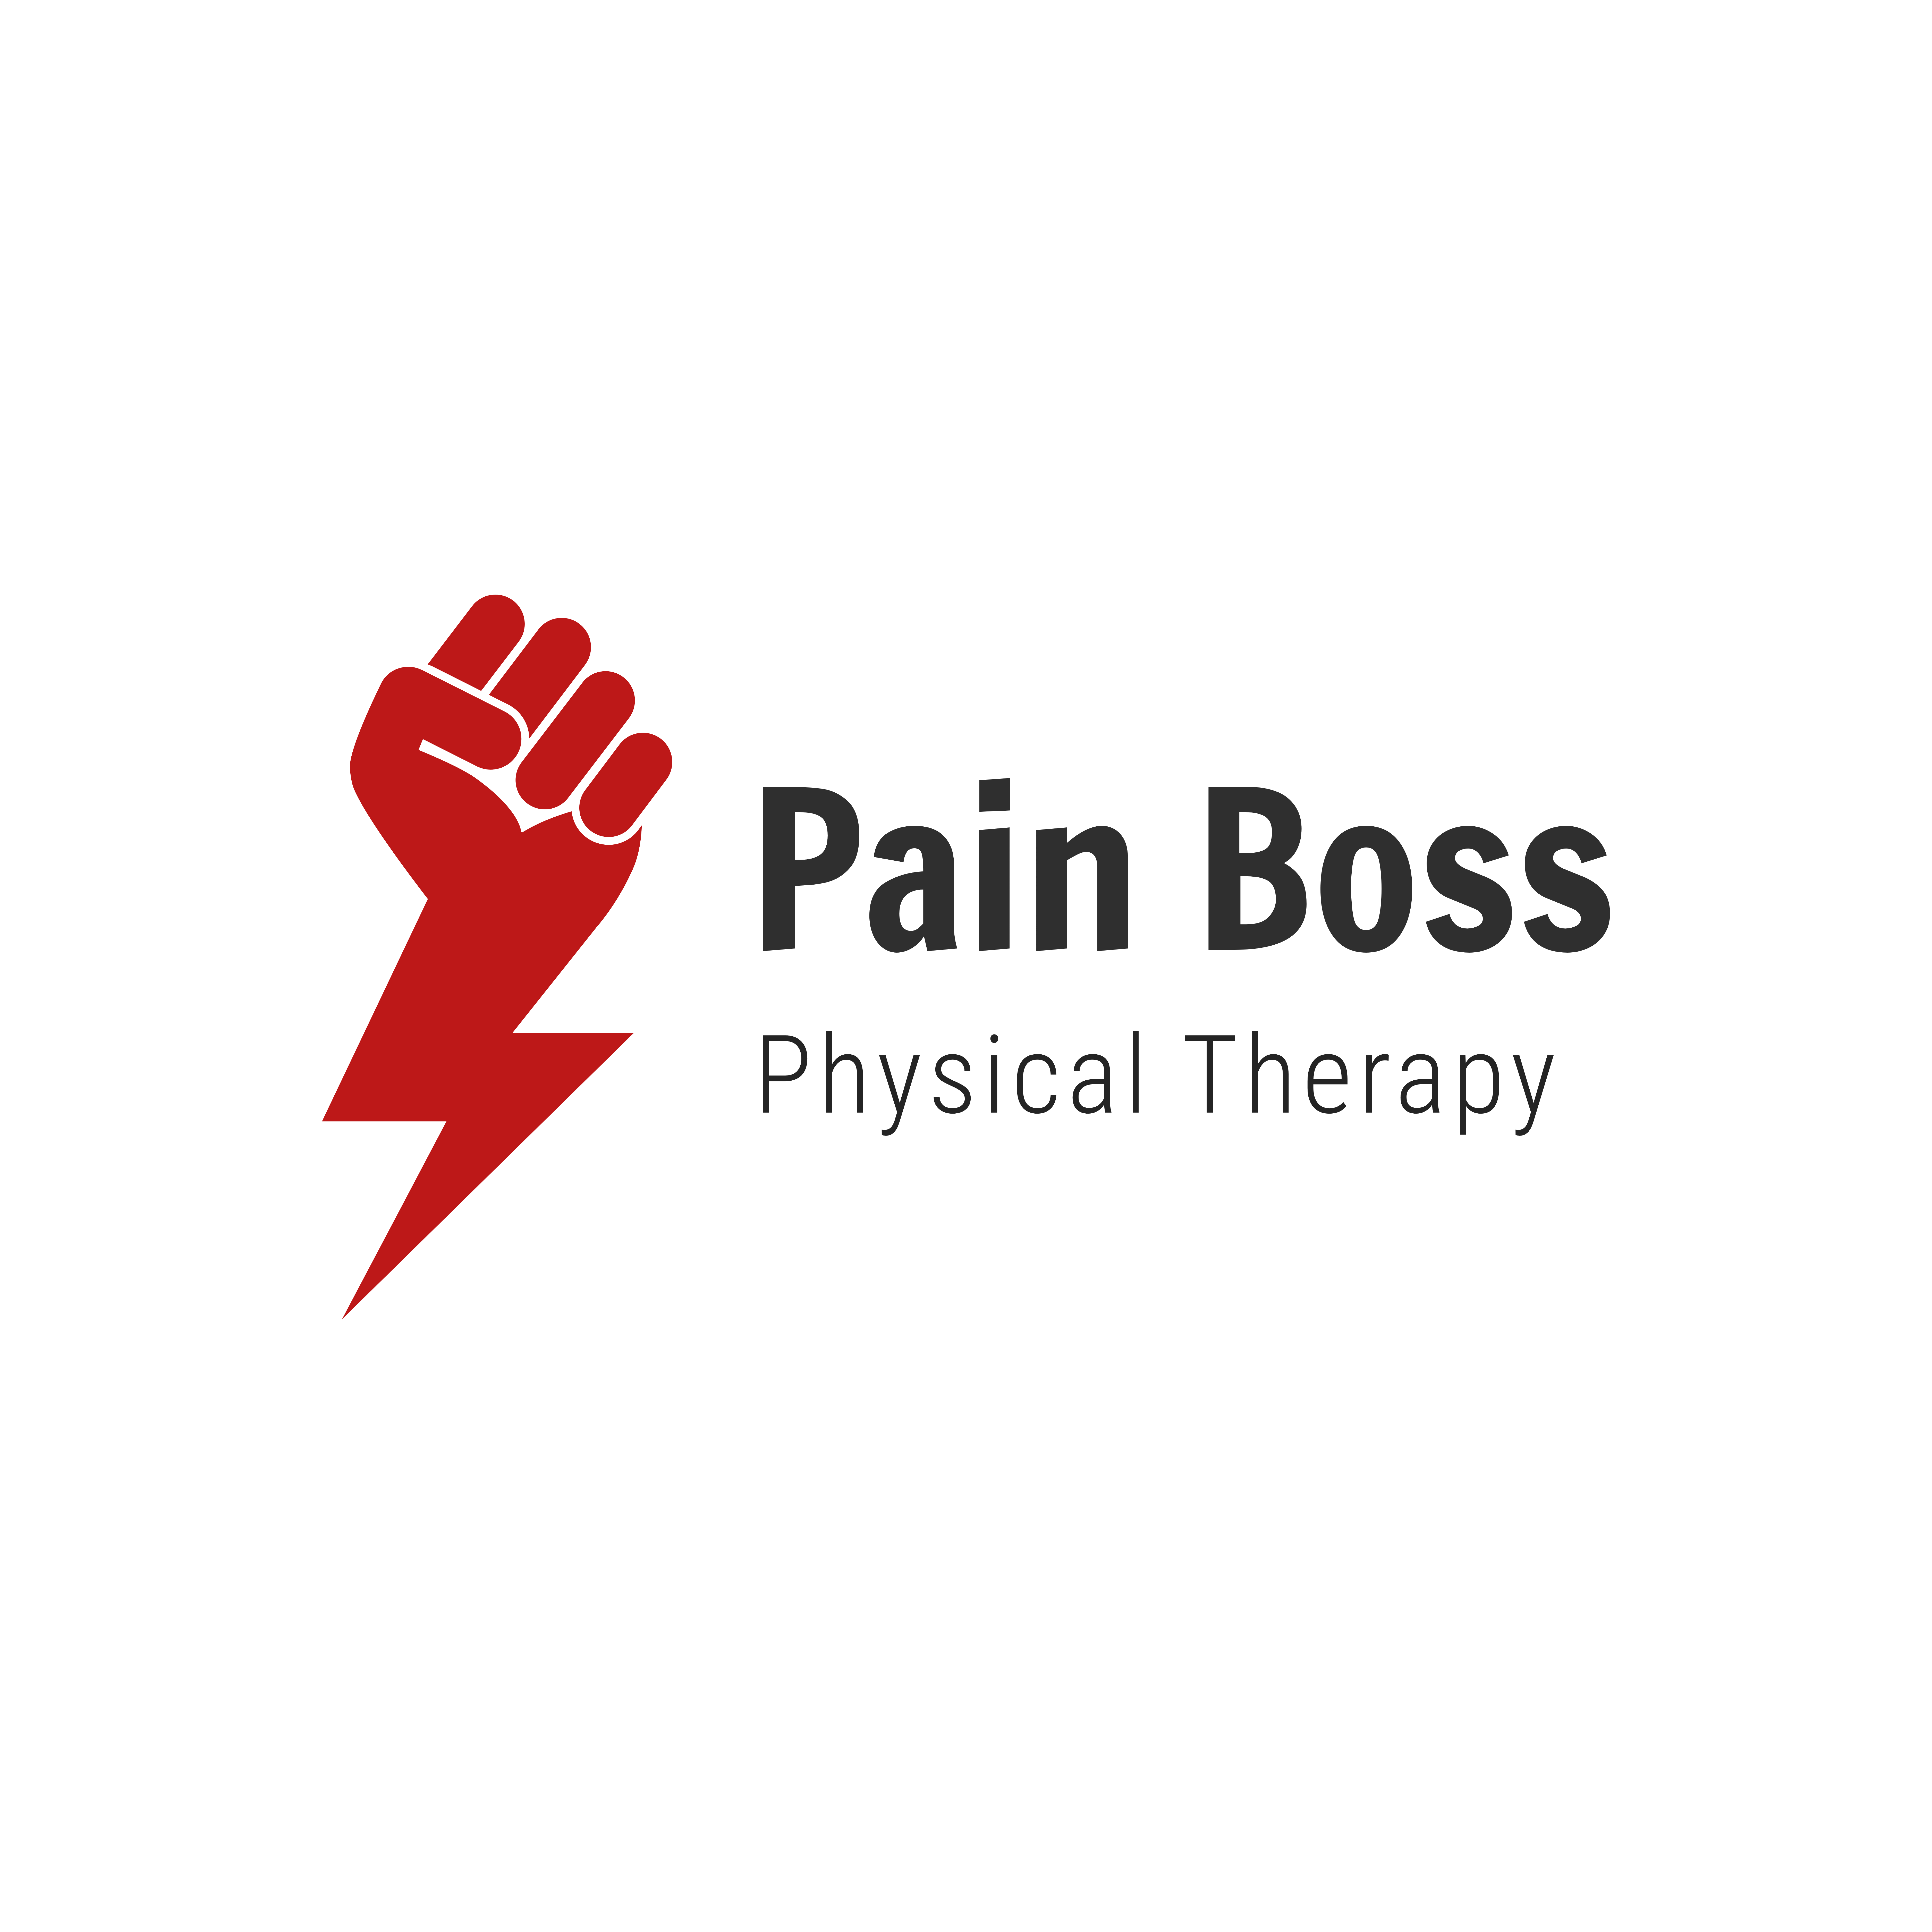 Pain Boss Physical Therapy Logo